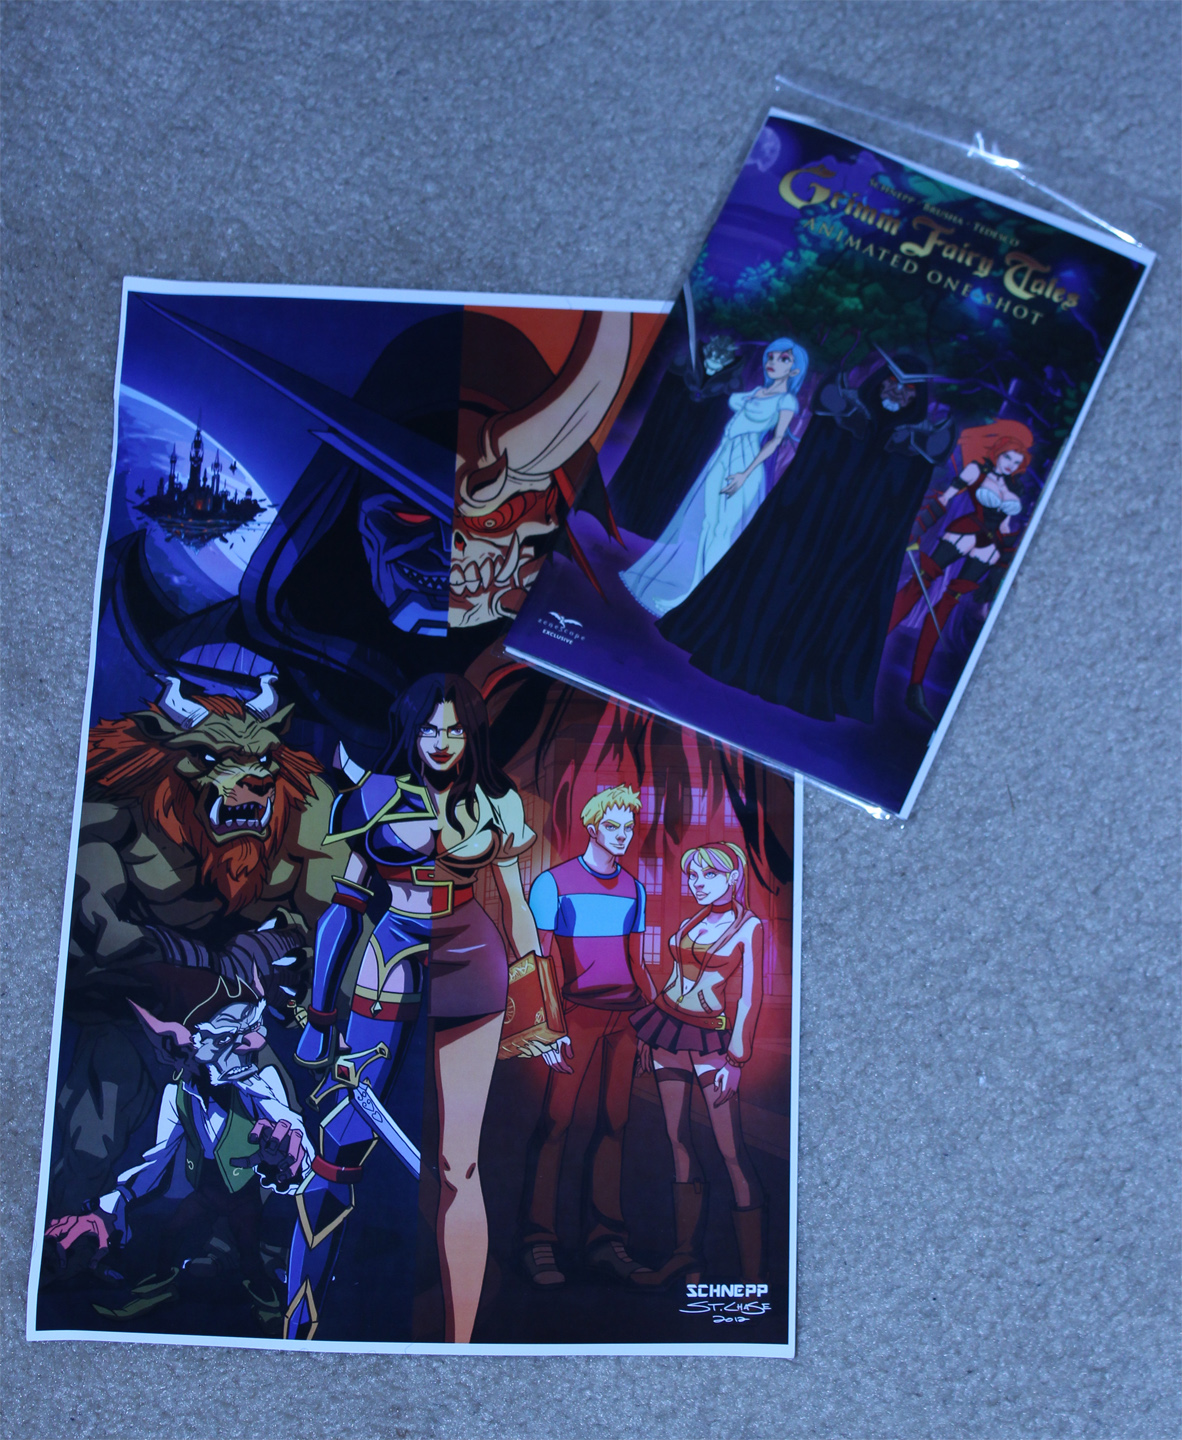 Print and Comic for Grimm Fairy Tales Animated Series